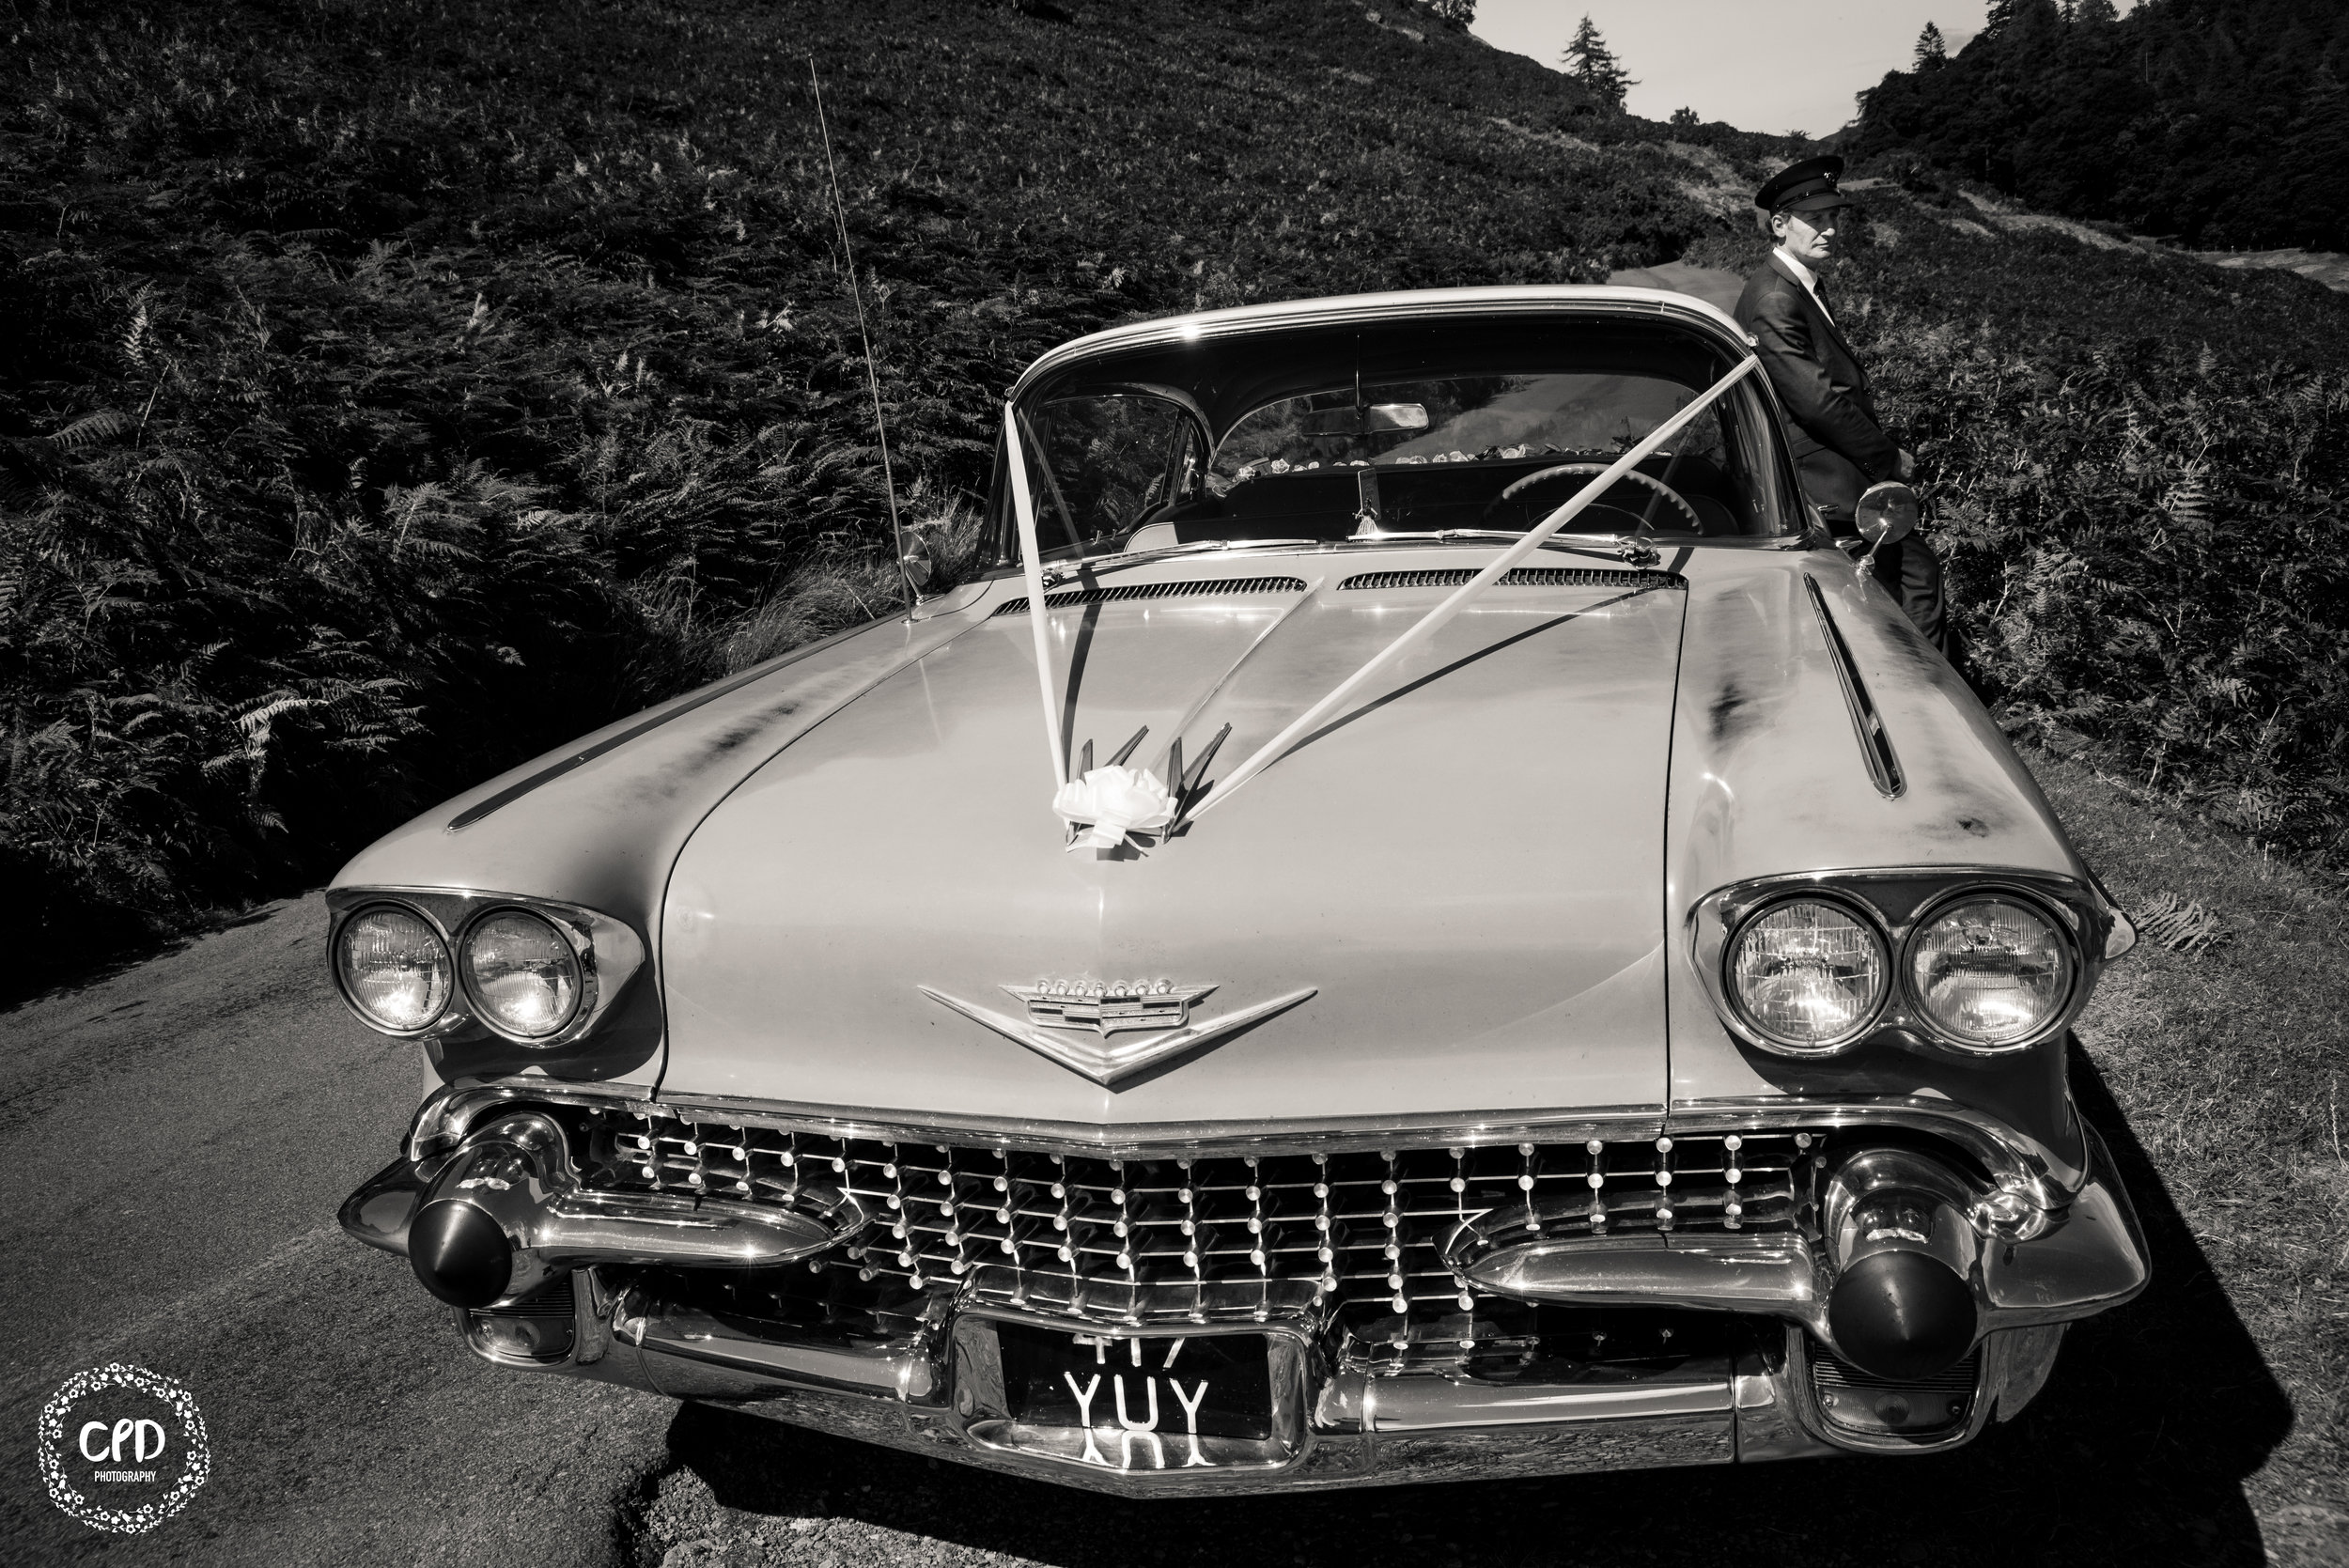 Black and White Image of The Cadillac